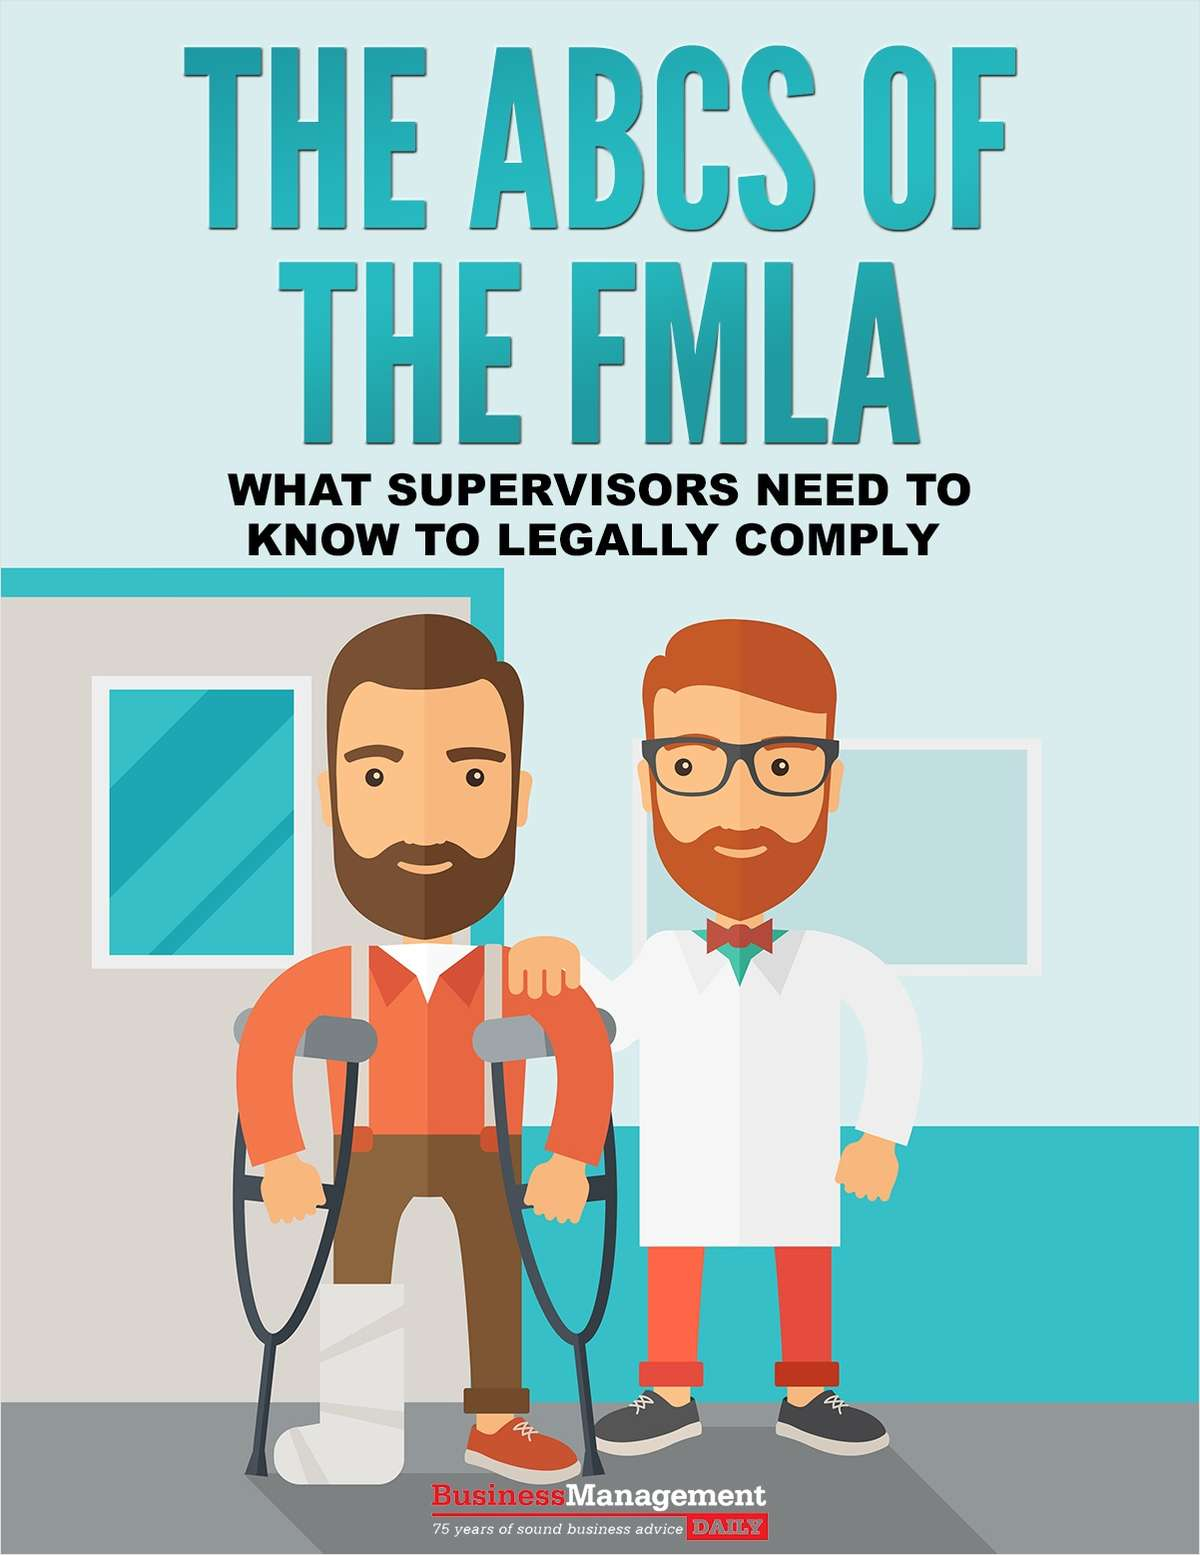 The ABCs of the FMLA - What Supervisors Need to Know to Legally Comply